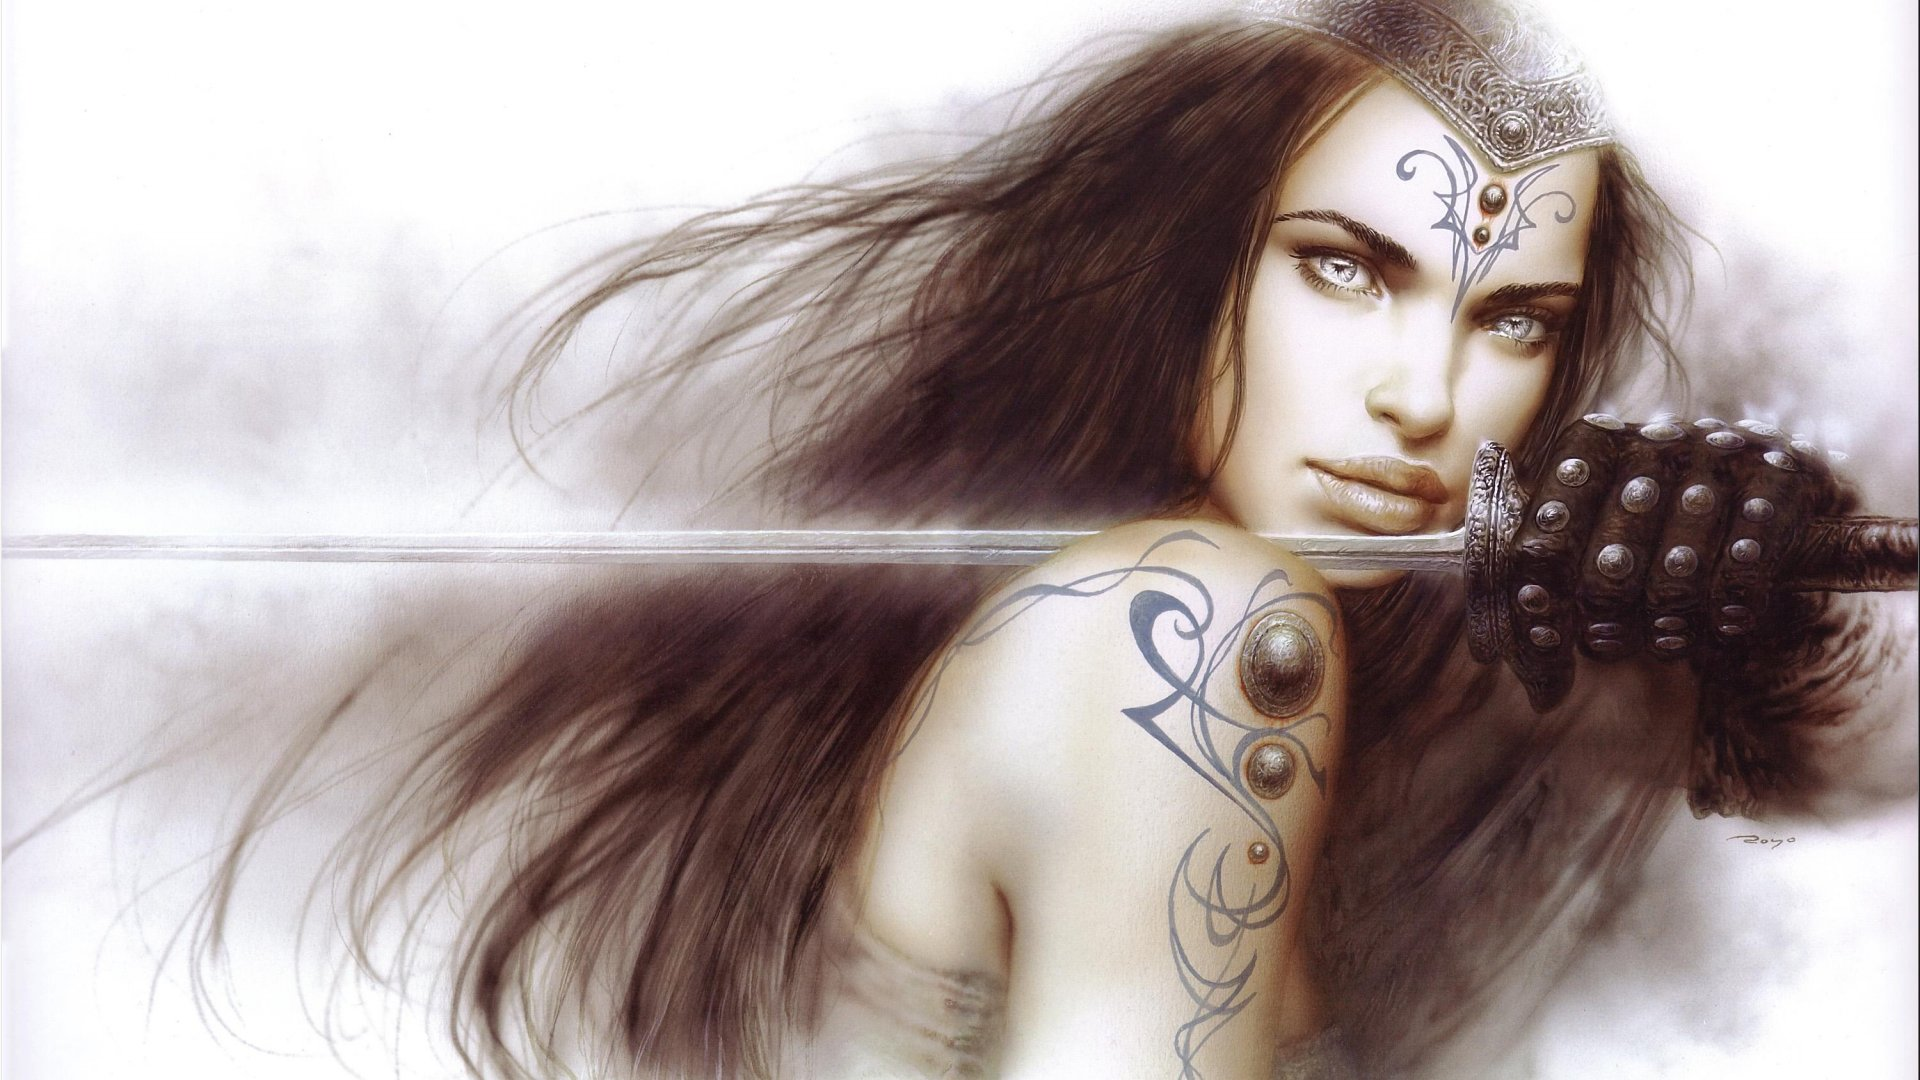 fantasy-girl-warrior-weapon-sword-tattoos-long-hair-white-background-black-gloves-1920x1080